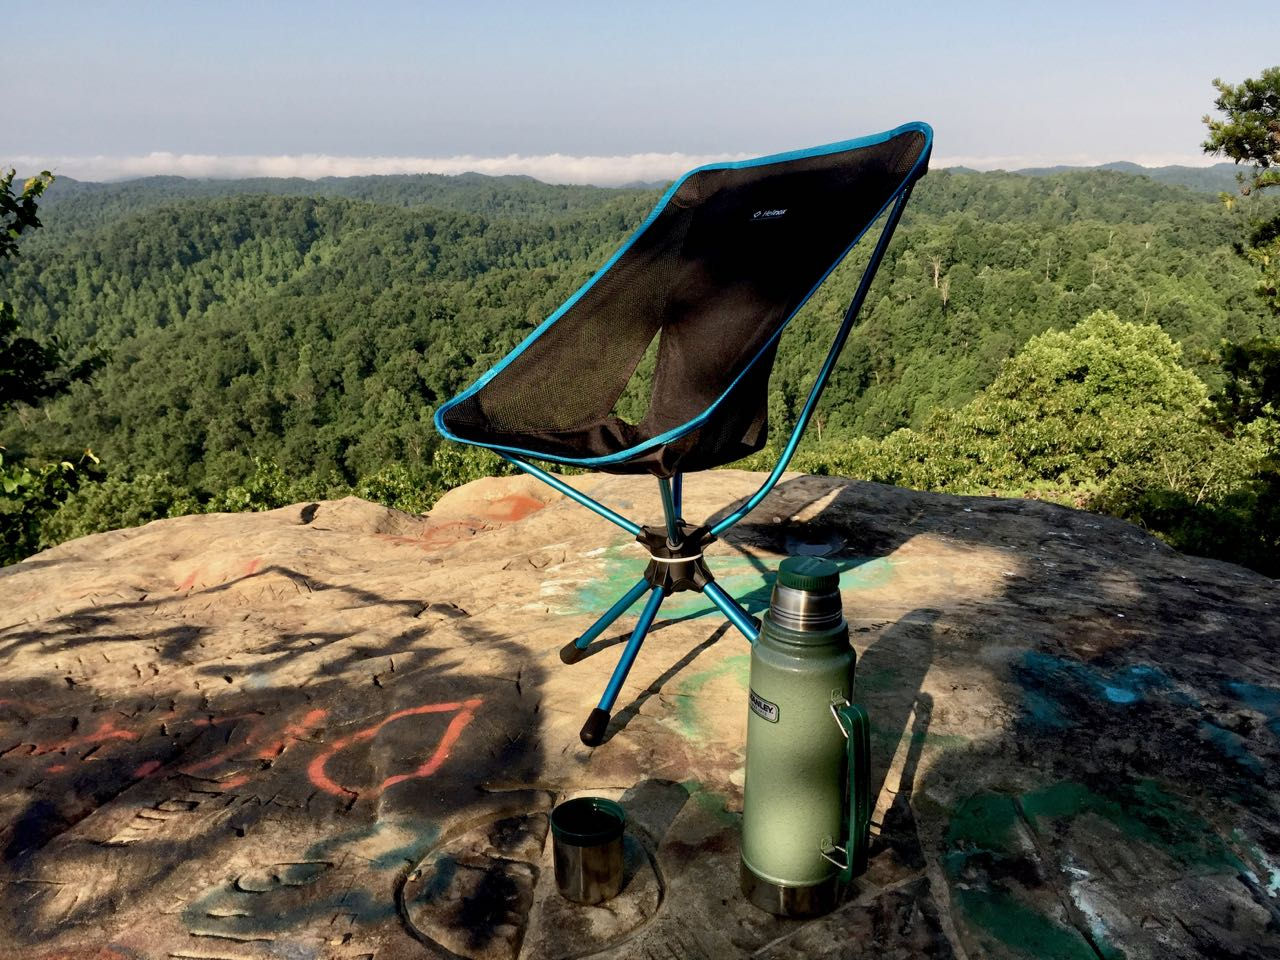 An image of the Helinox Swivel Trek Chair on the summit of Lockegee Rock near Morehead Kentucky.